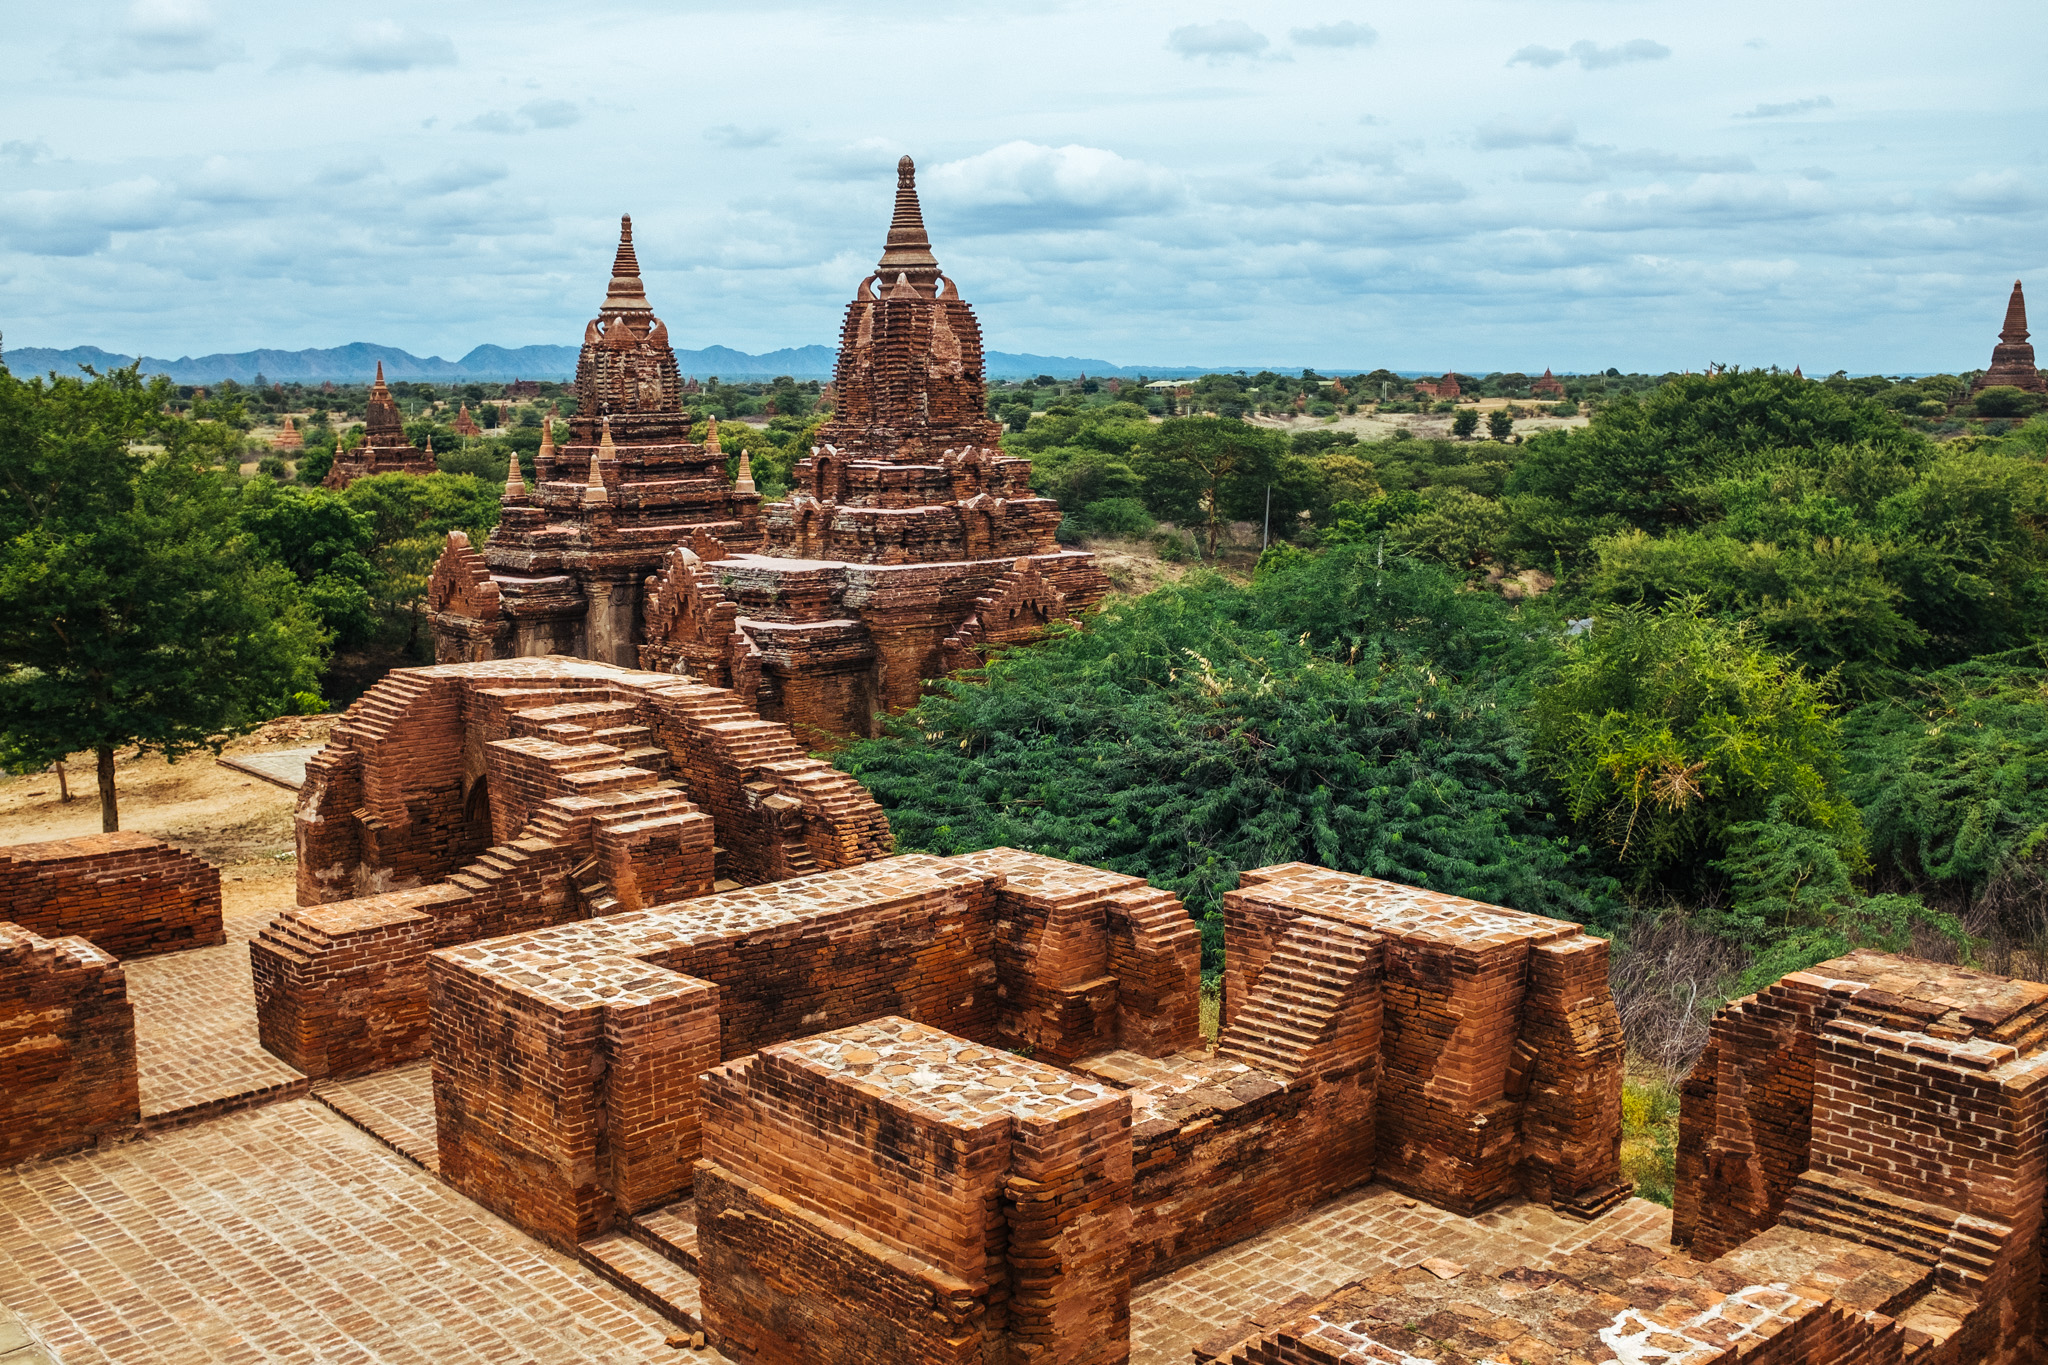 A short domestic flight will land you in Bagan - an ancient city that was once the capital of the Pagan Kingdom. The name Bagan is derived from Pagan.